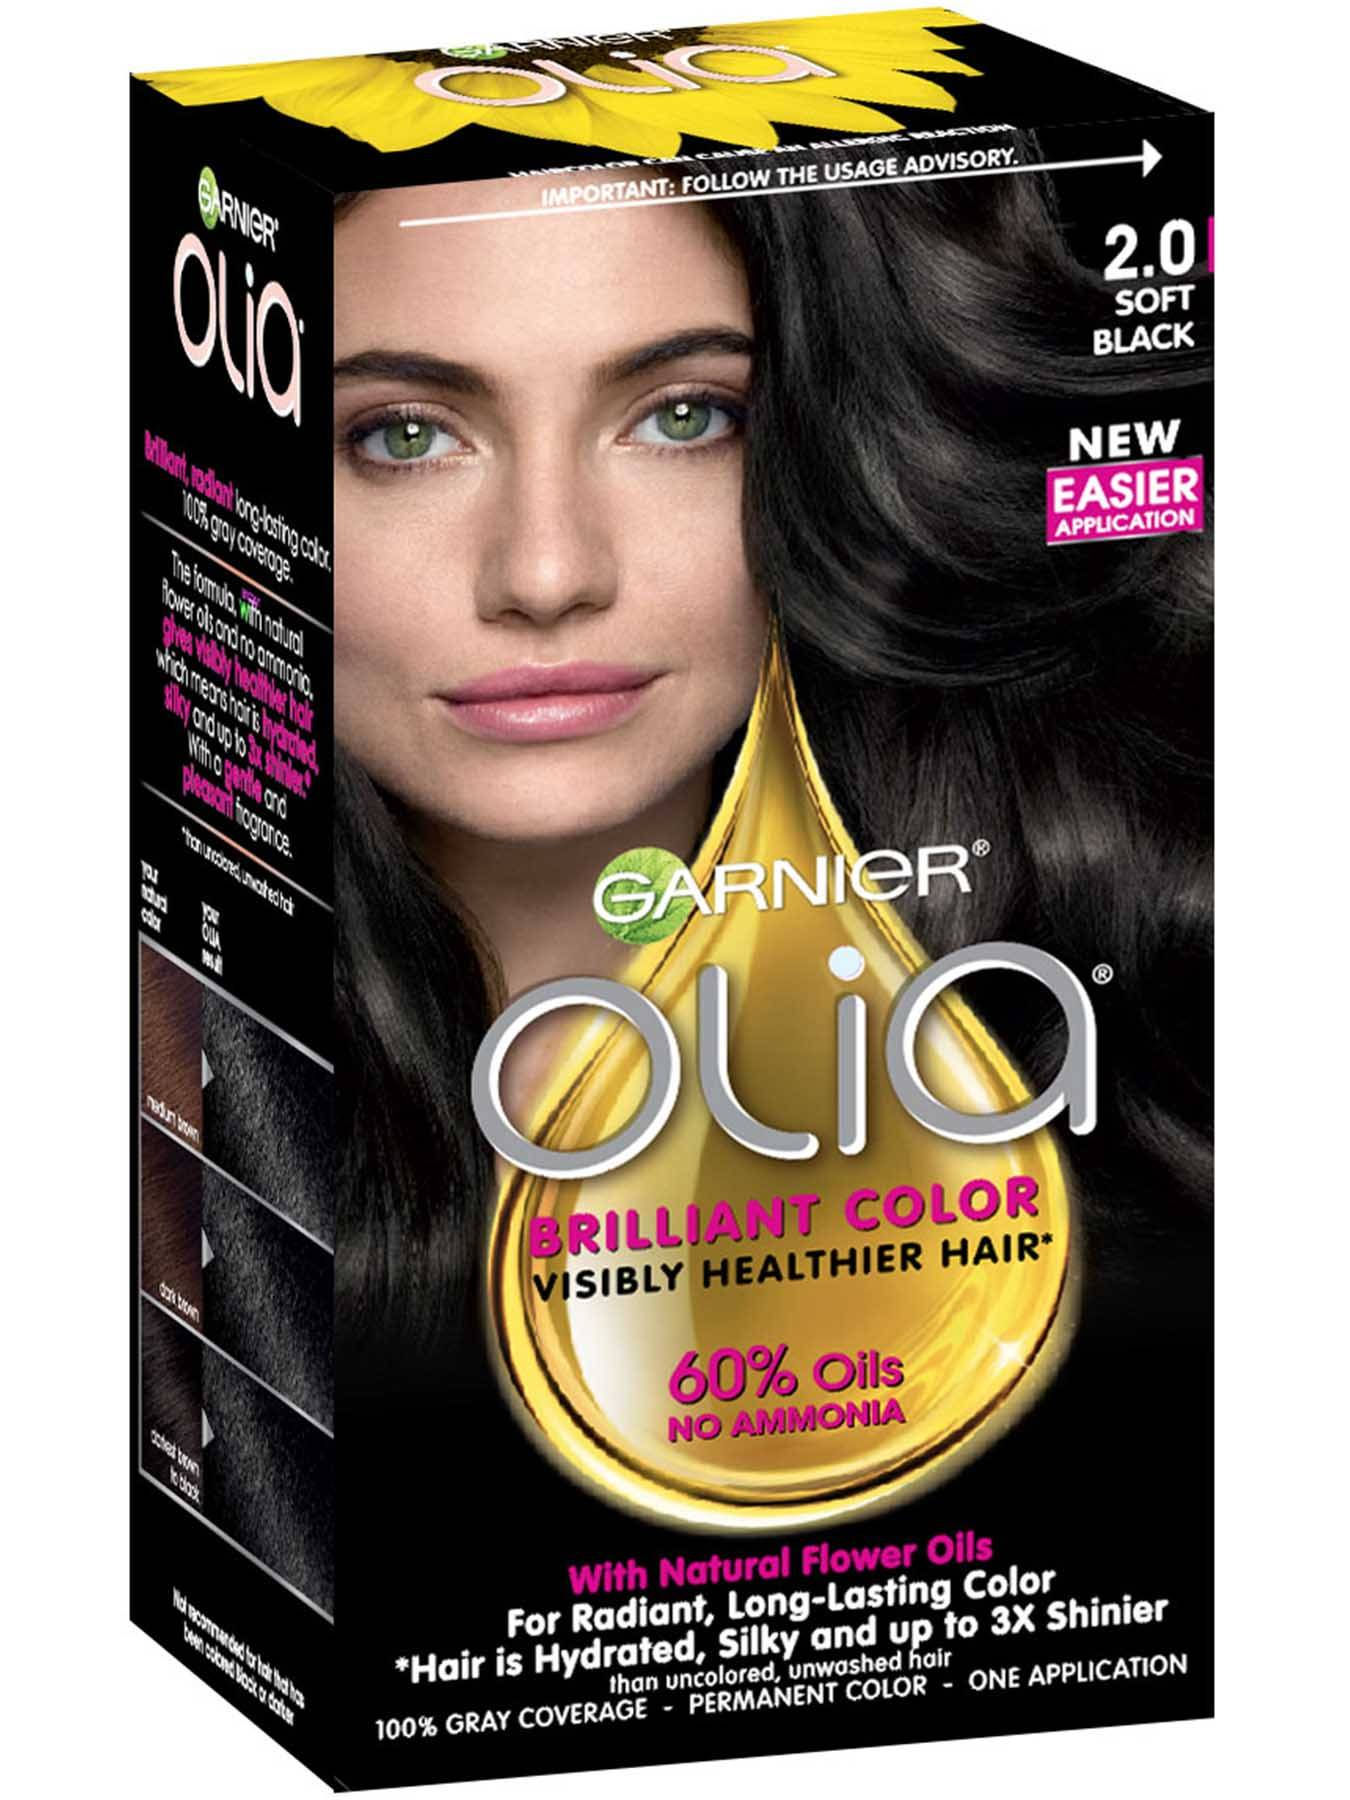 Garnier Olia 2.0 - Soft Black - Powered Permanent Hair Color